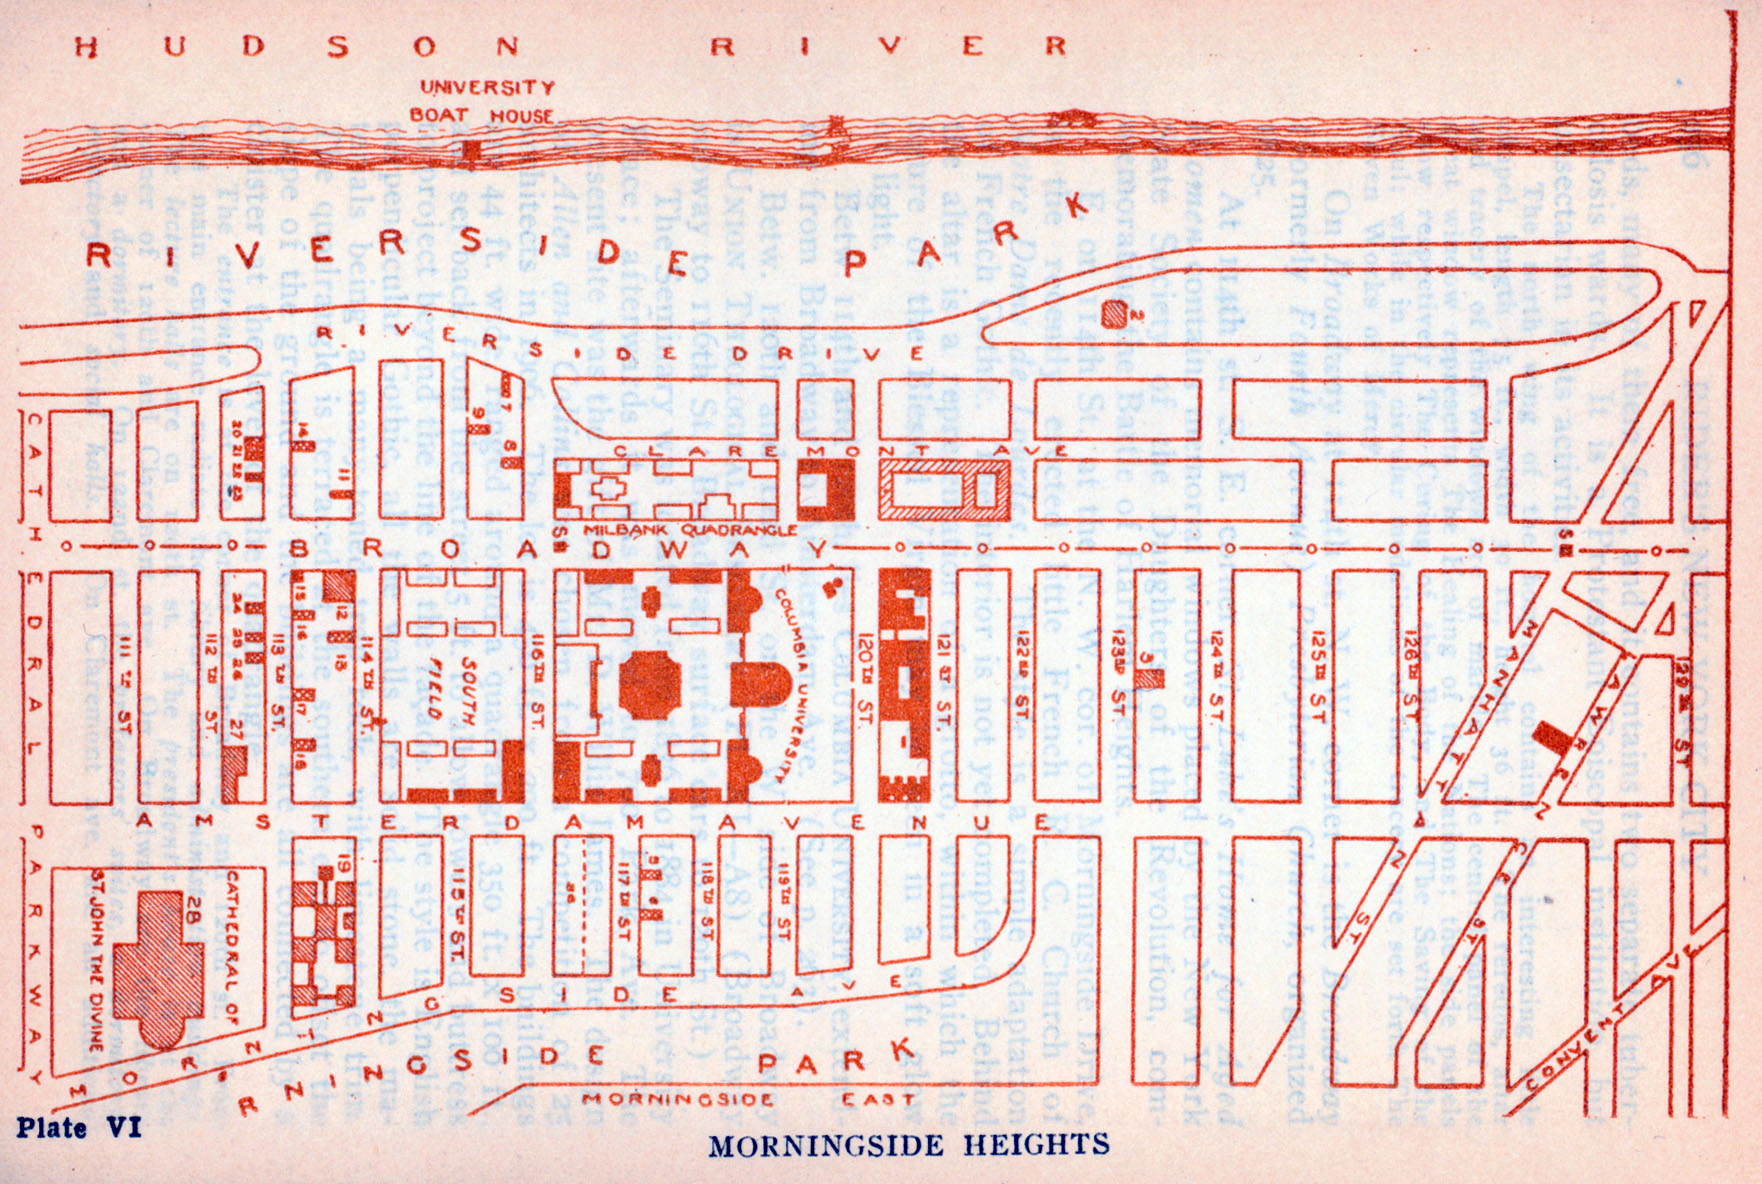 Mapa de Morningside Heights, Ciudad de Nueva York, Nueva York, Estados Unidos 1916